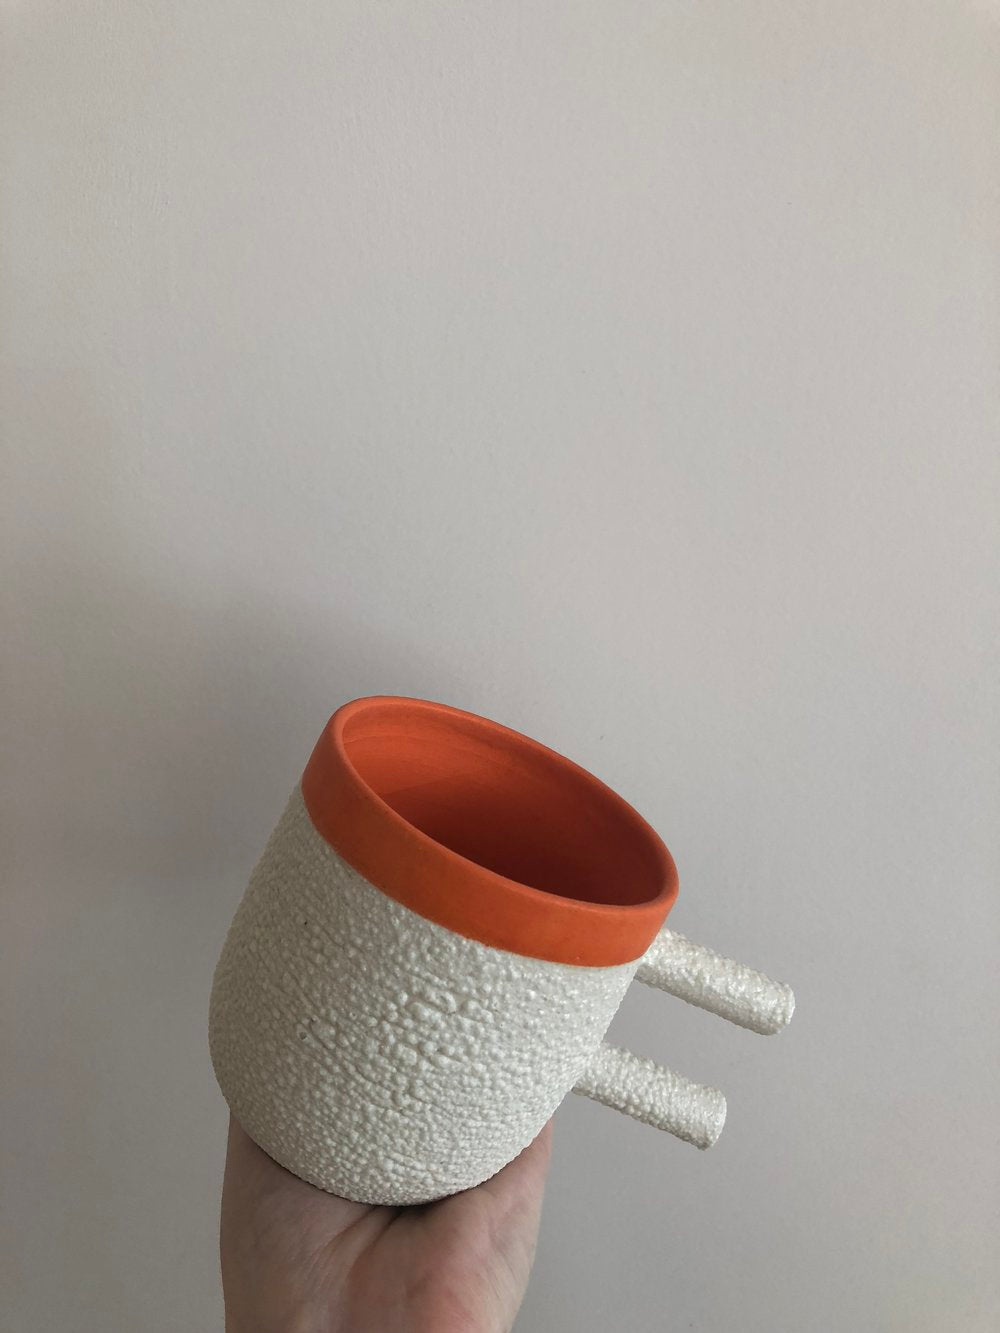 Ceramic Handmade Lamb Chop Orange Mug